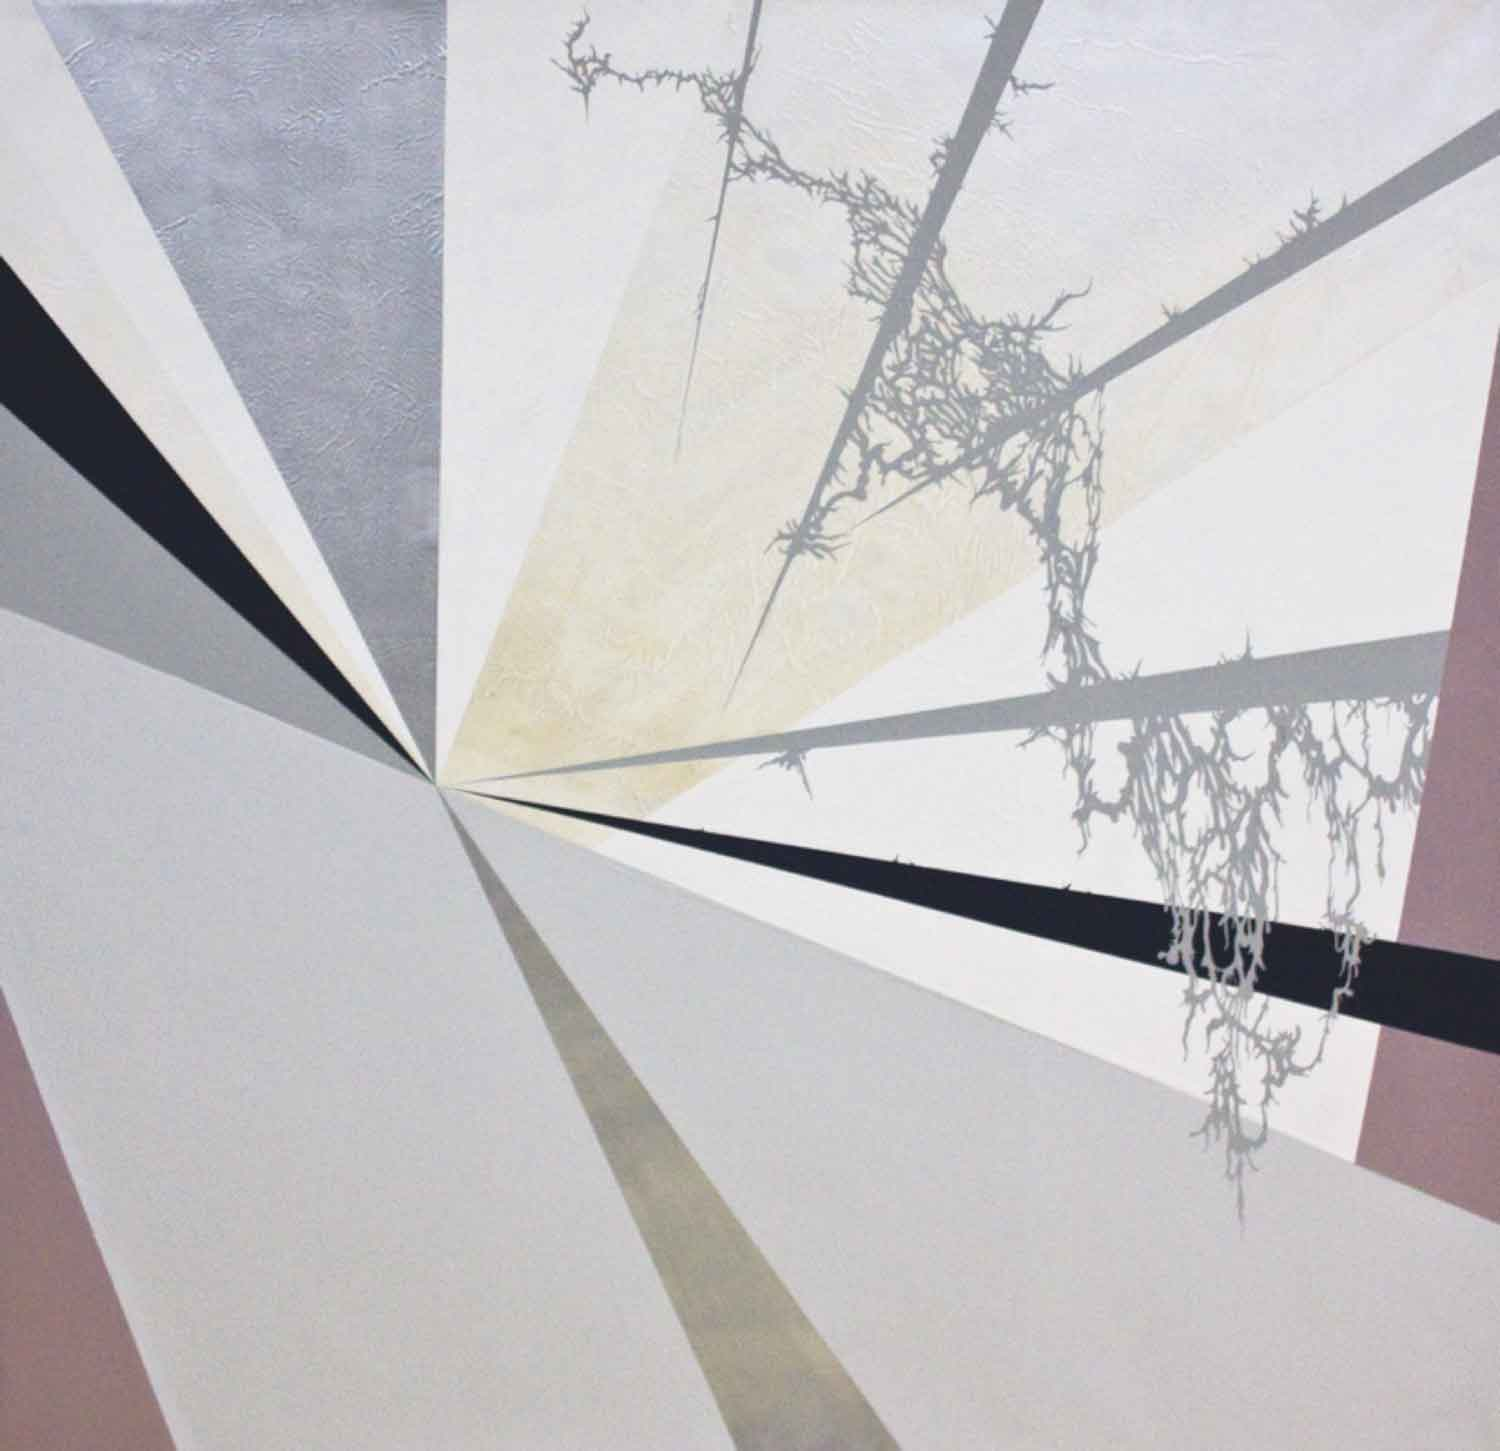 "Julie Davidow, Diagram #29 (Denver Art Museum/ Libeskind/ Interior stairwell), 2011, gesso, acrylic, latex enamel, transference pigment, chrome paint on canvas, 64"" x 64."" © Julie Davidow. Photo credit: Brian Burkhardt."